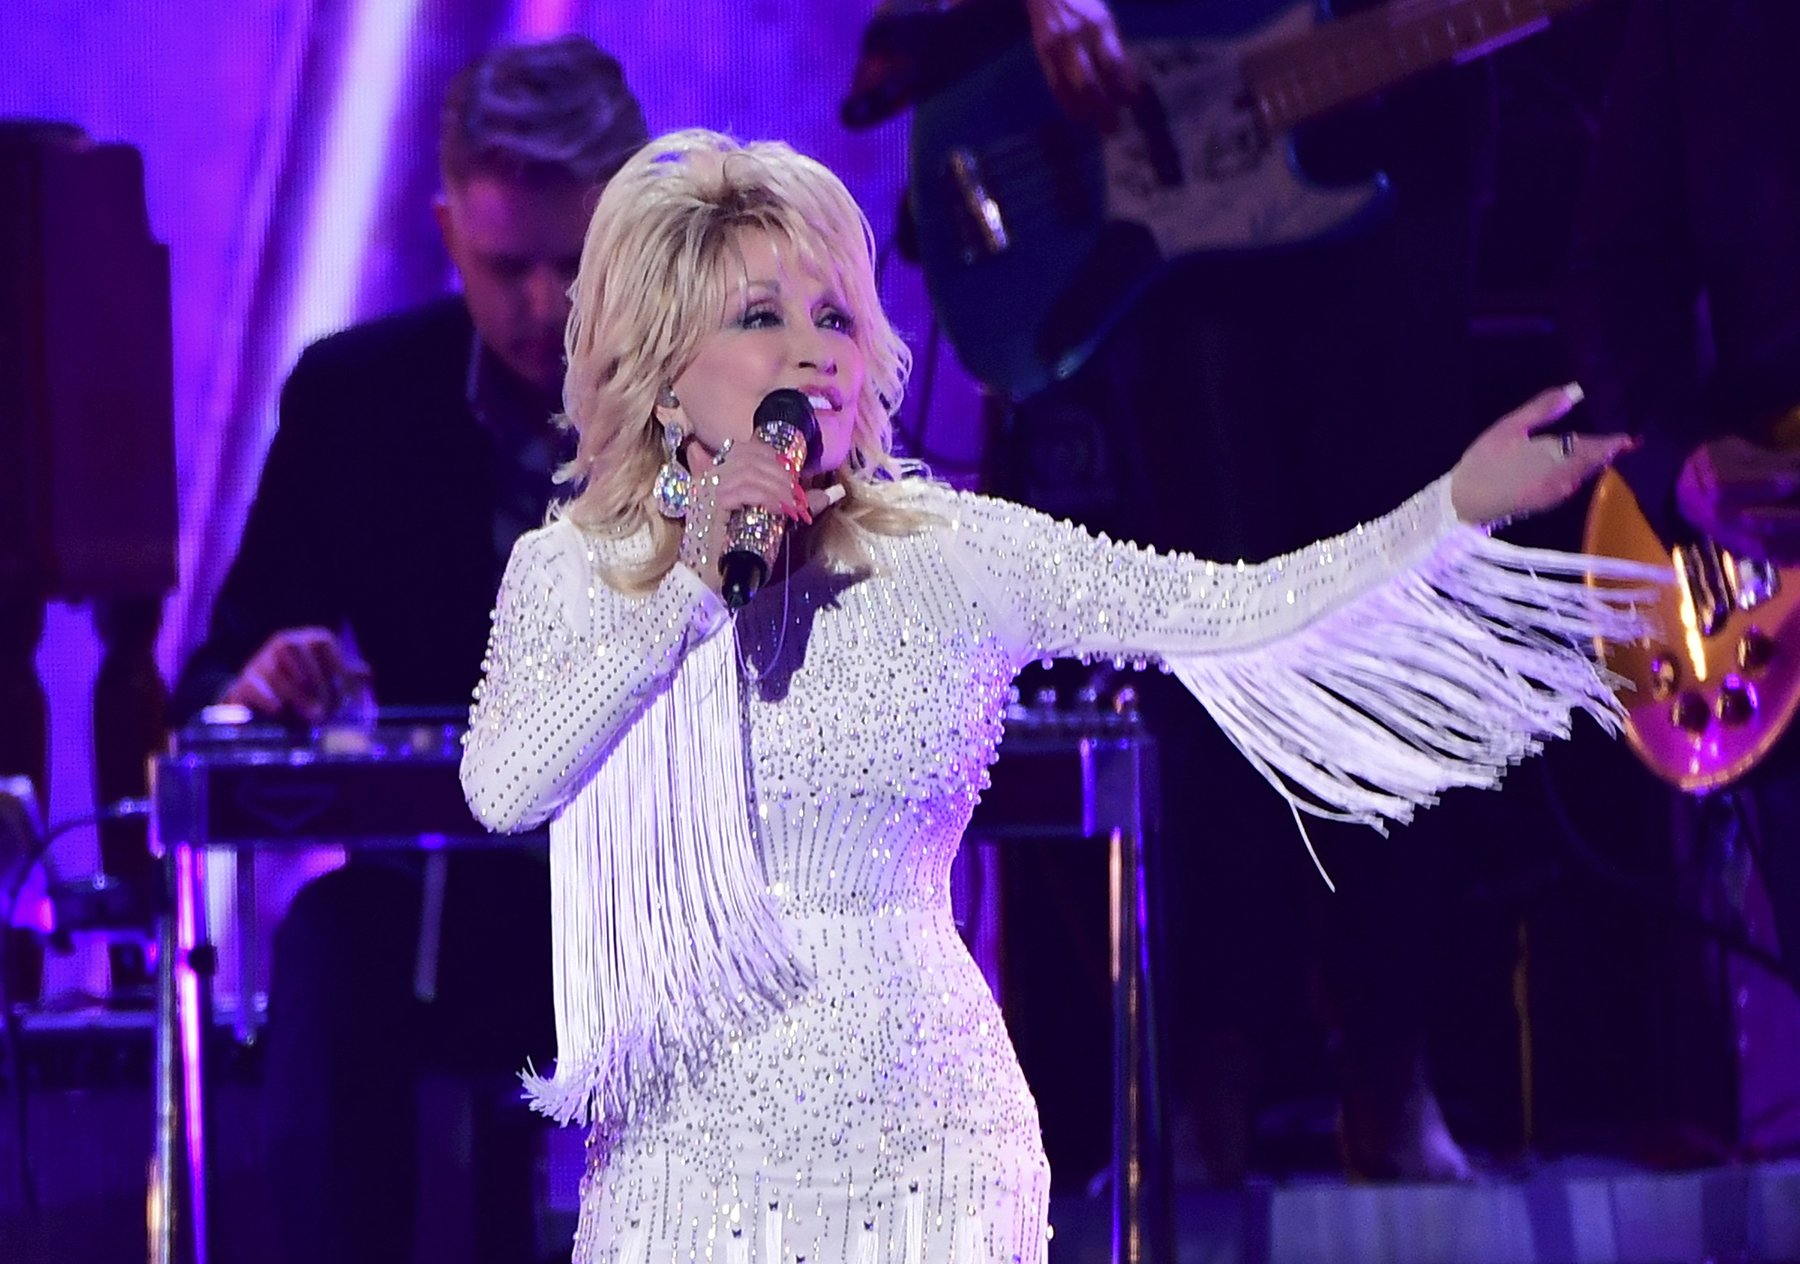 Dolly Parton to Sing With Miley Cyrus, Michael Bublé on 'A Holly Dolly Christmas' Album